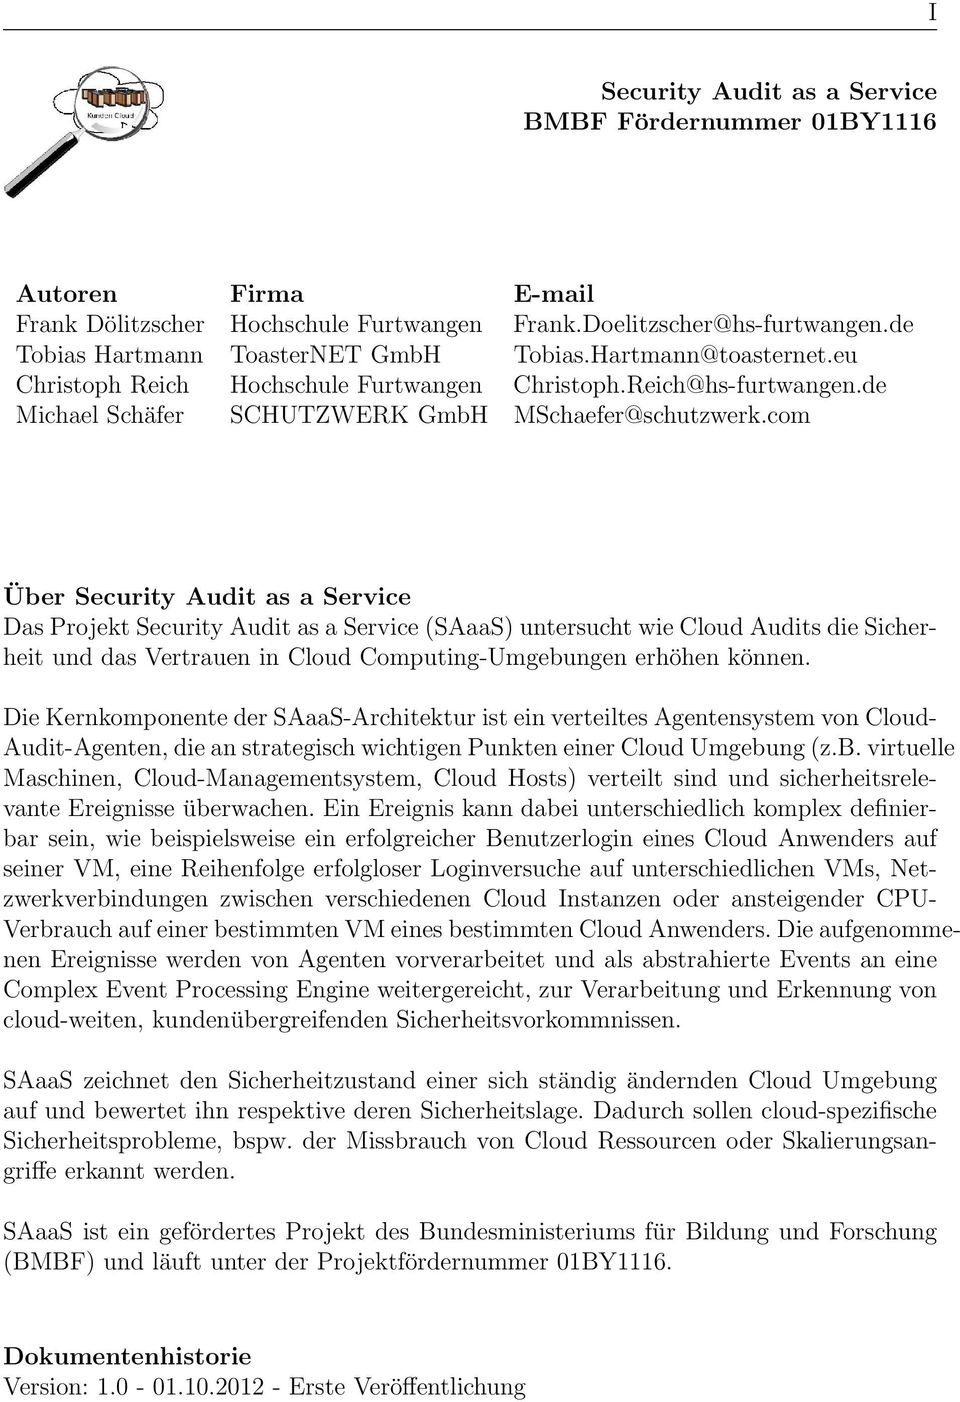 com Über Security Audit as a Service Das Projekt Security Audit as a Service (SAaaS) untersucht wie Cloud Audits die Sicherheit und das Vertrauen in Cloud Computing-Umgebungen erhöhen können.